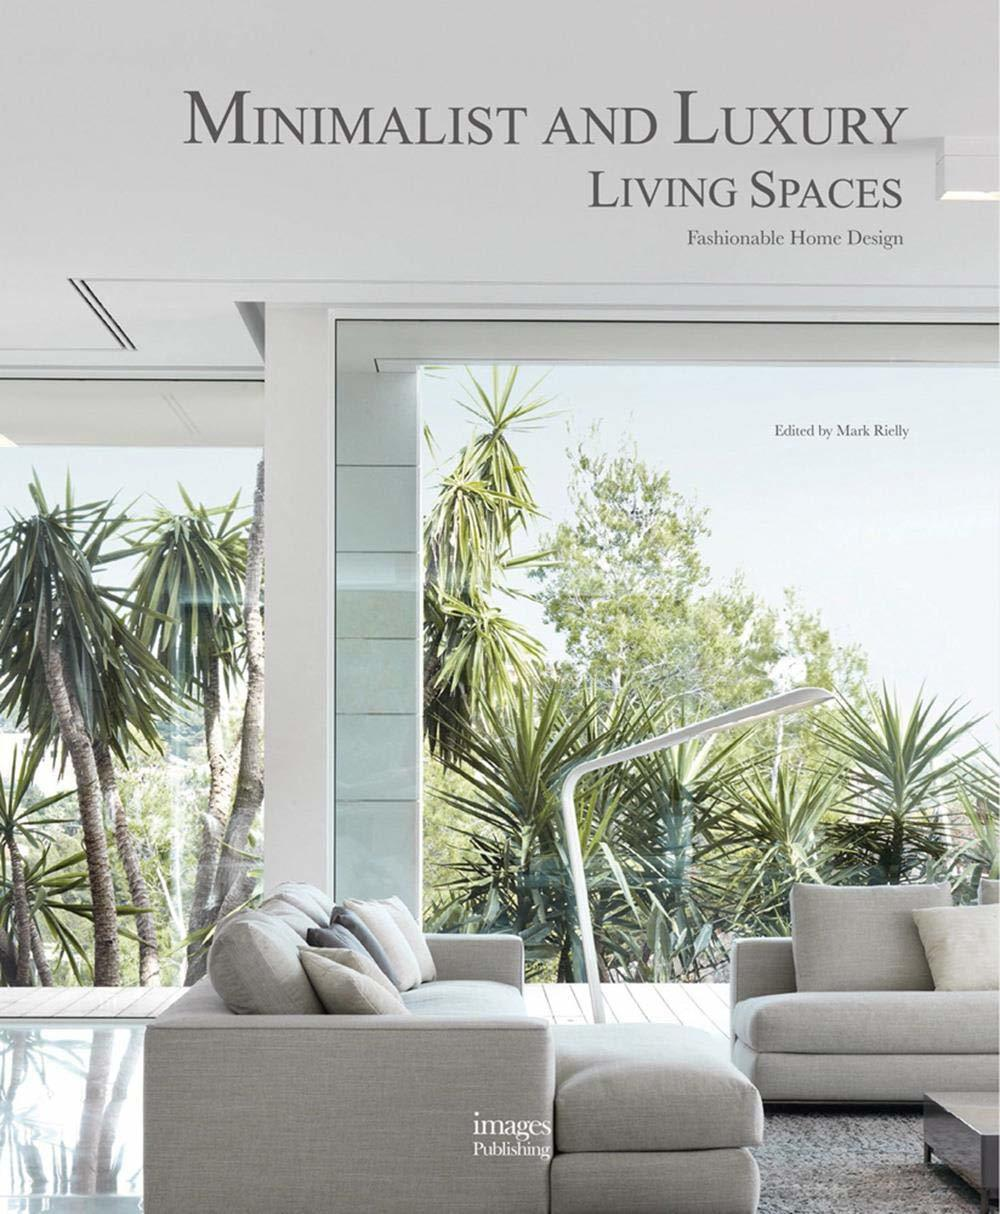 Minimalist and Luxury Living Spaces: Fashionable Home Design